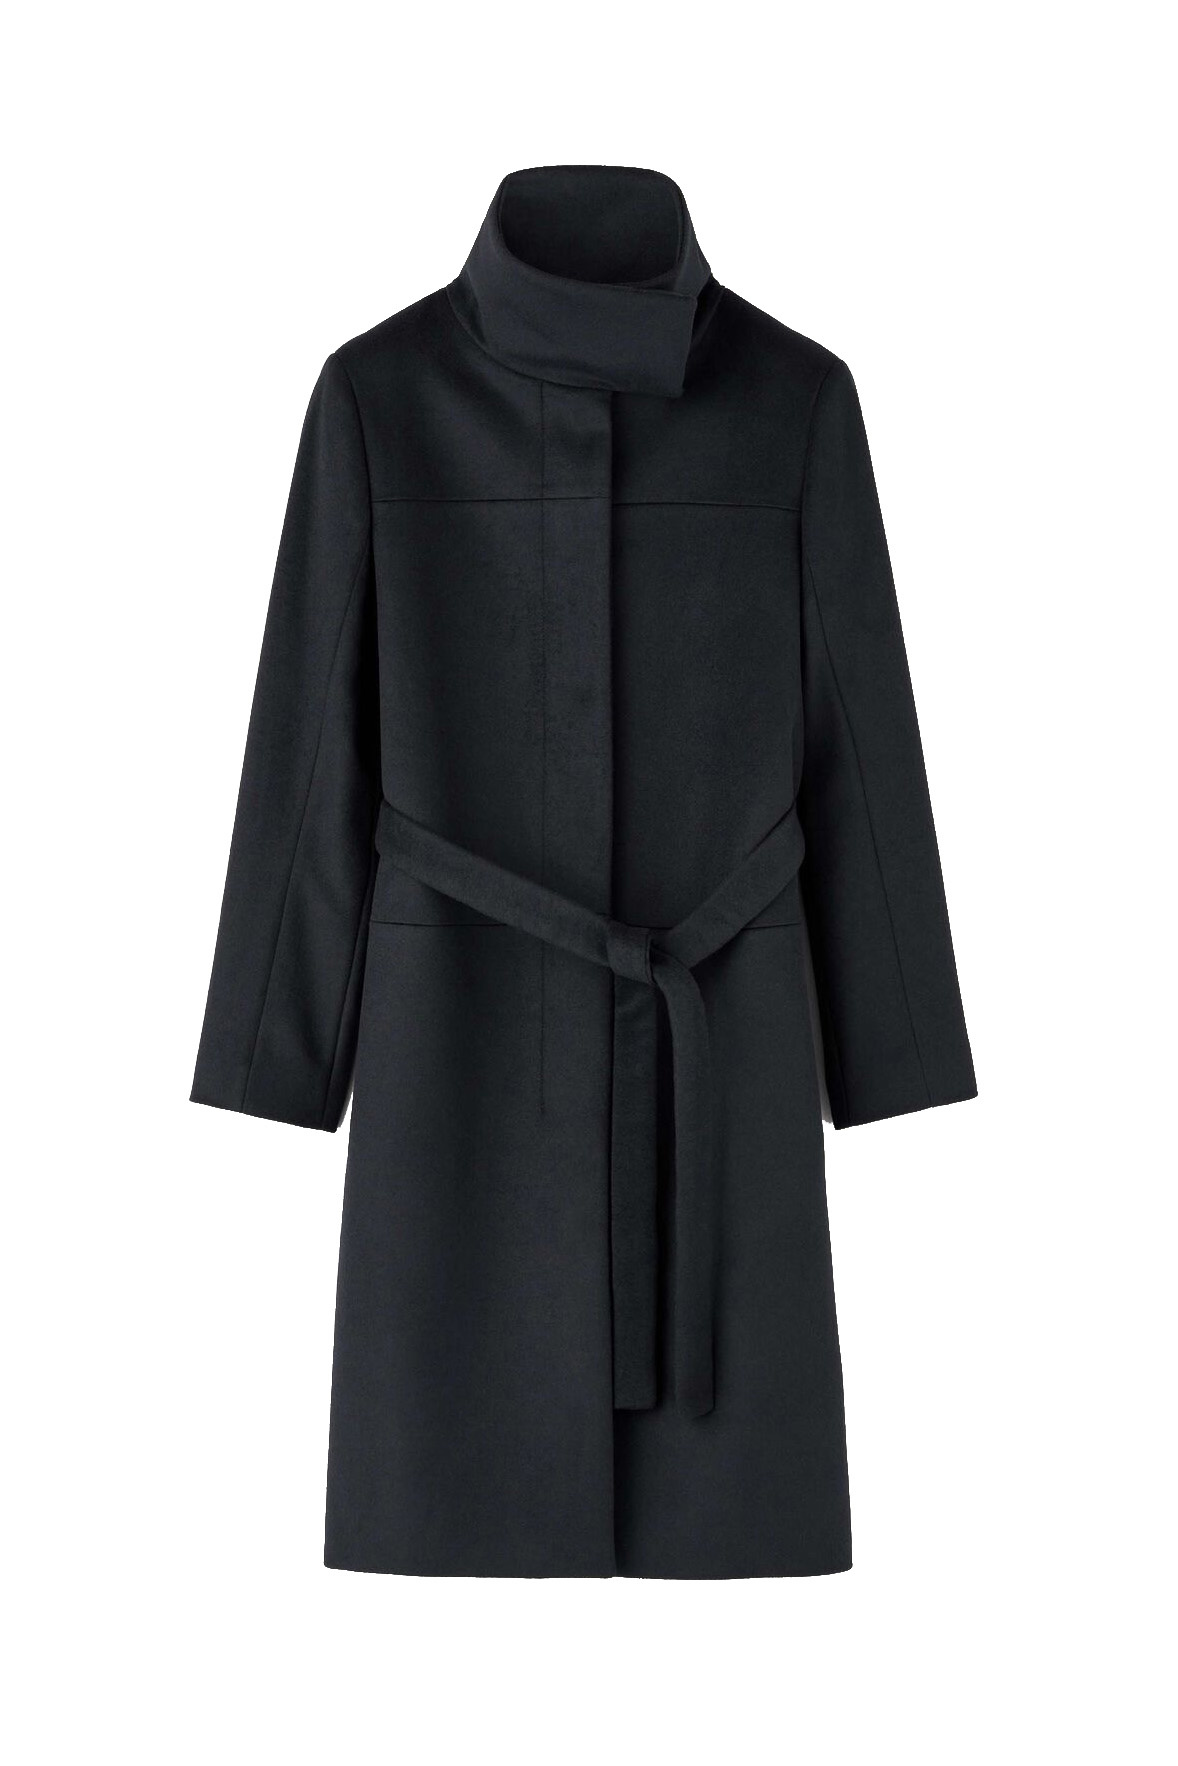 Cori Coat - Black-1